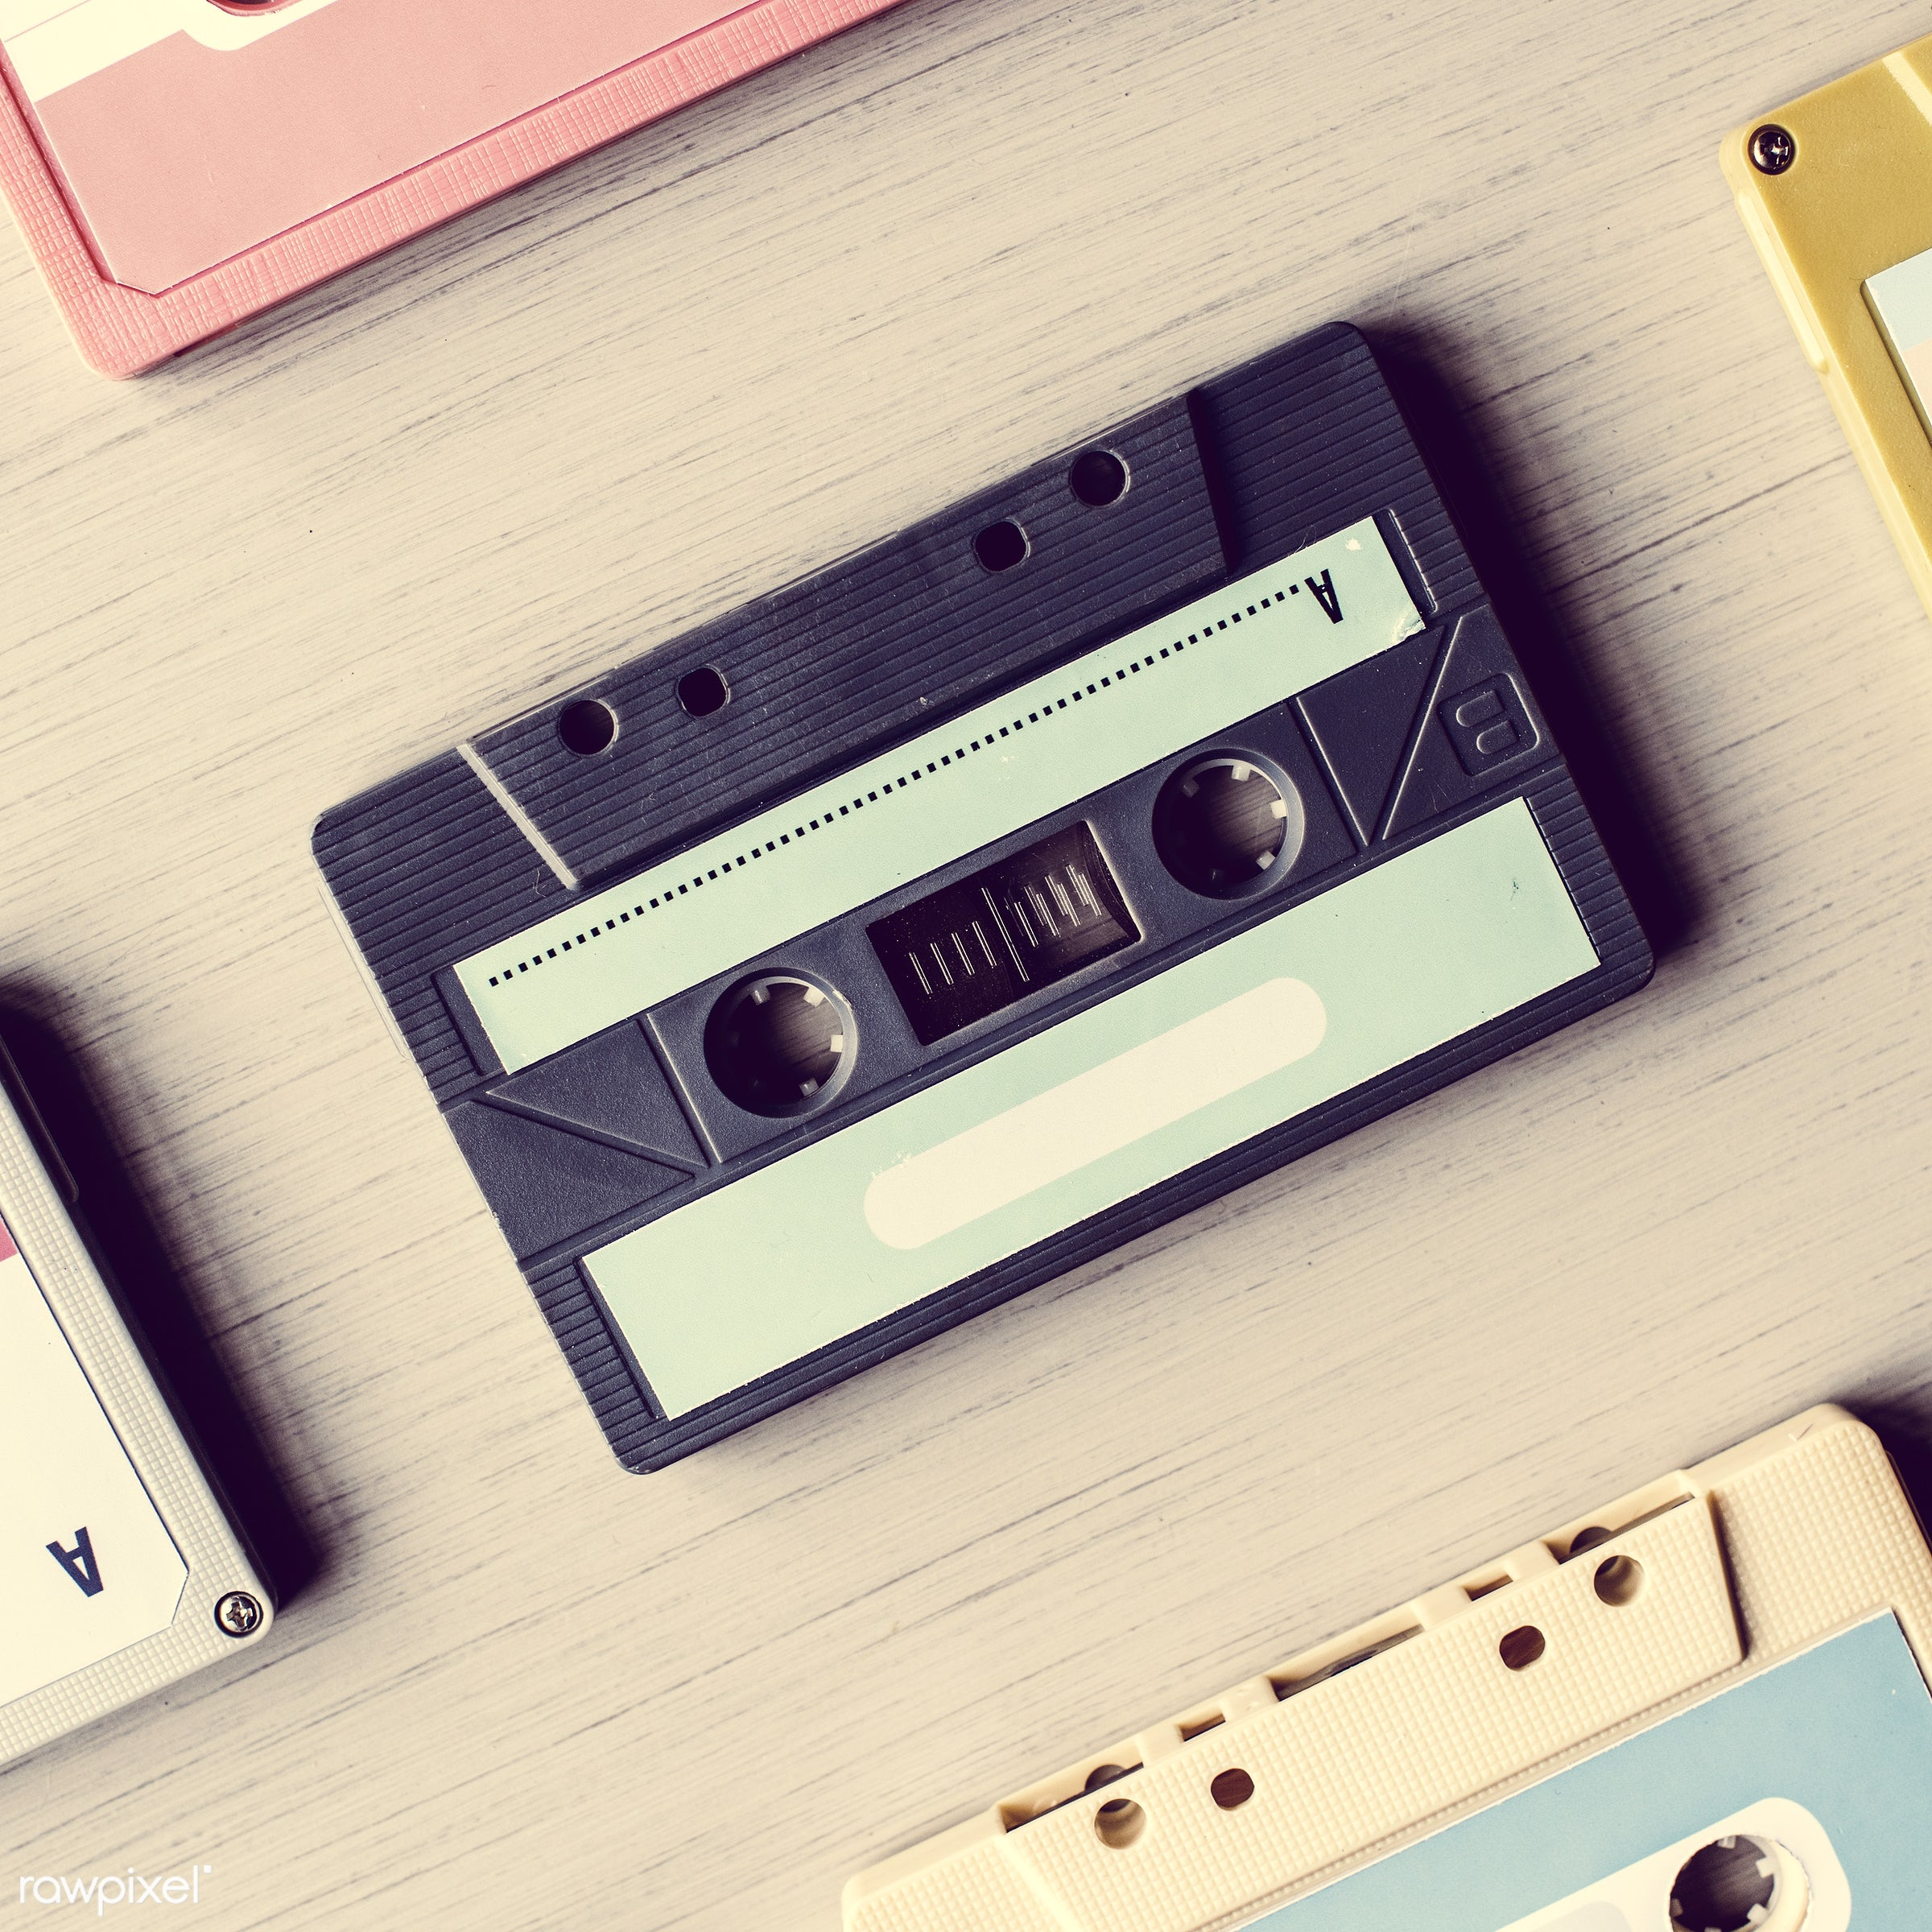 old, retro, equipment, tape, collection, used, aged, compact, style, cassette, classic, music, audio, vintage, obsolete, old...